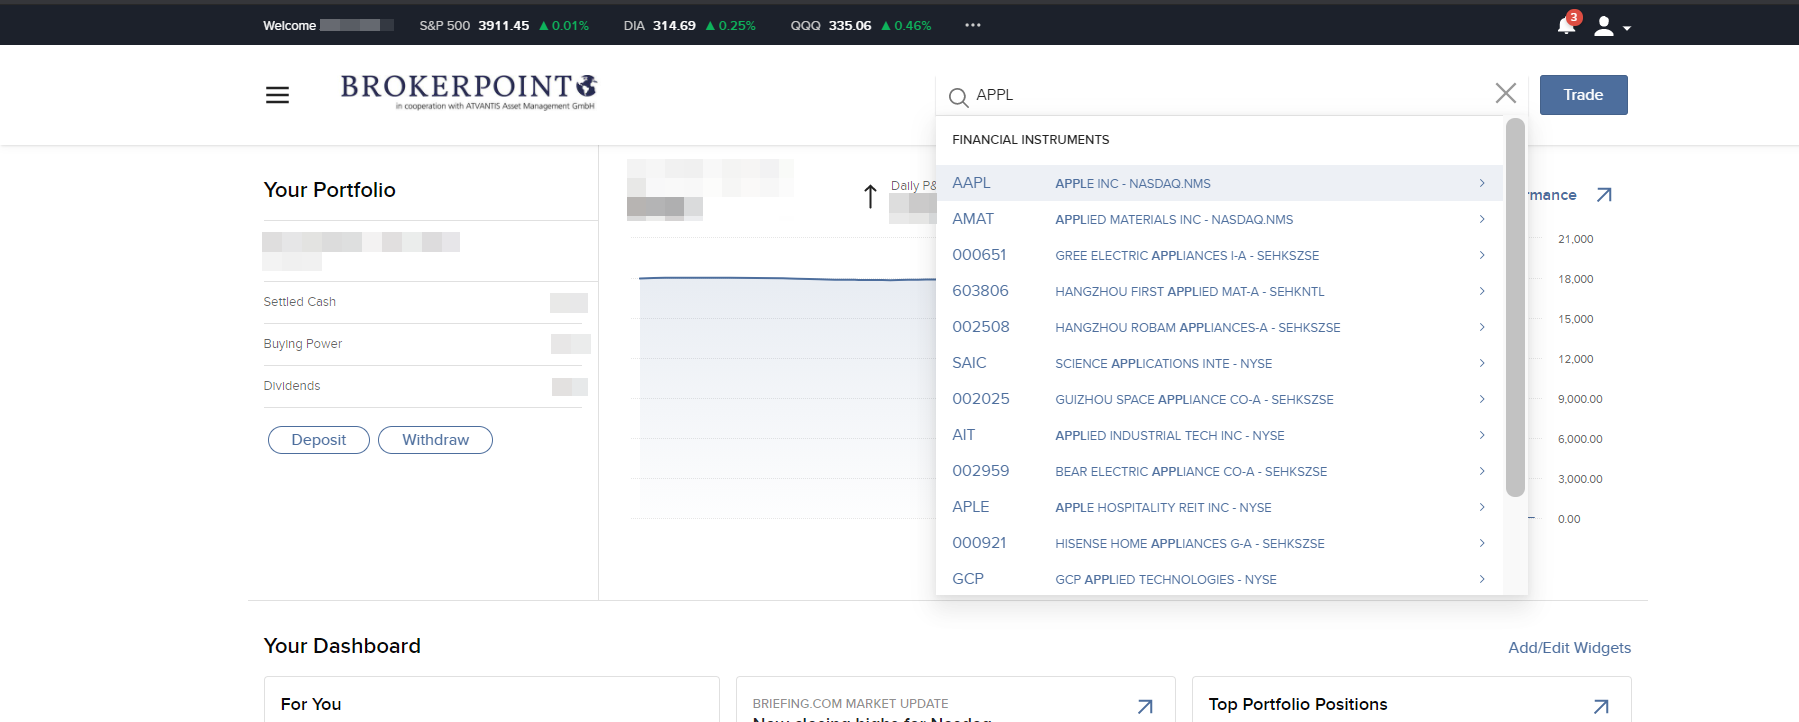 Brokerpoint review - Web trading platform - Search